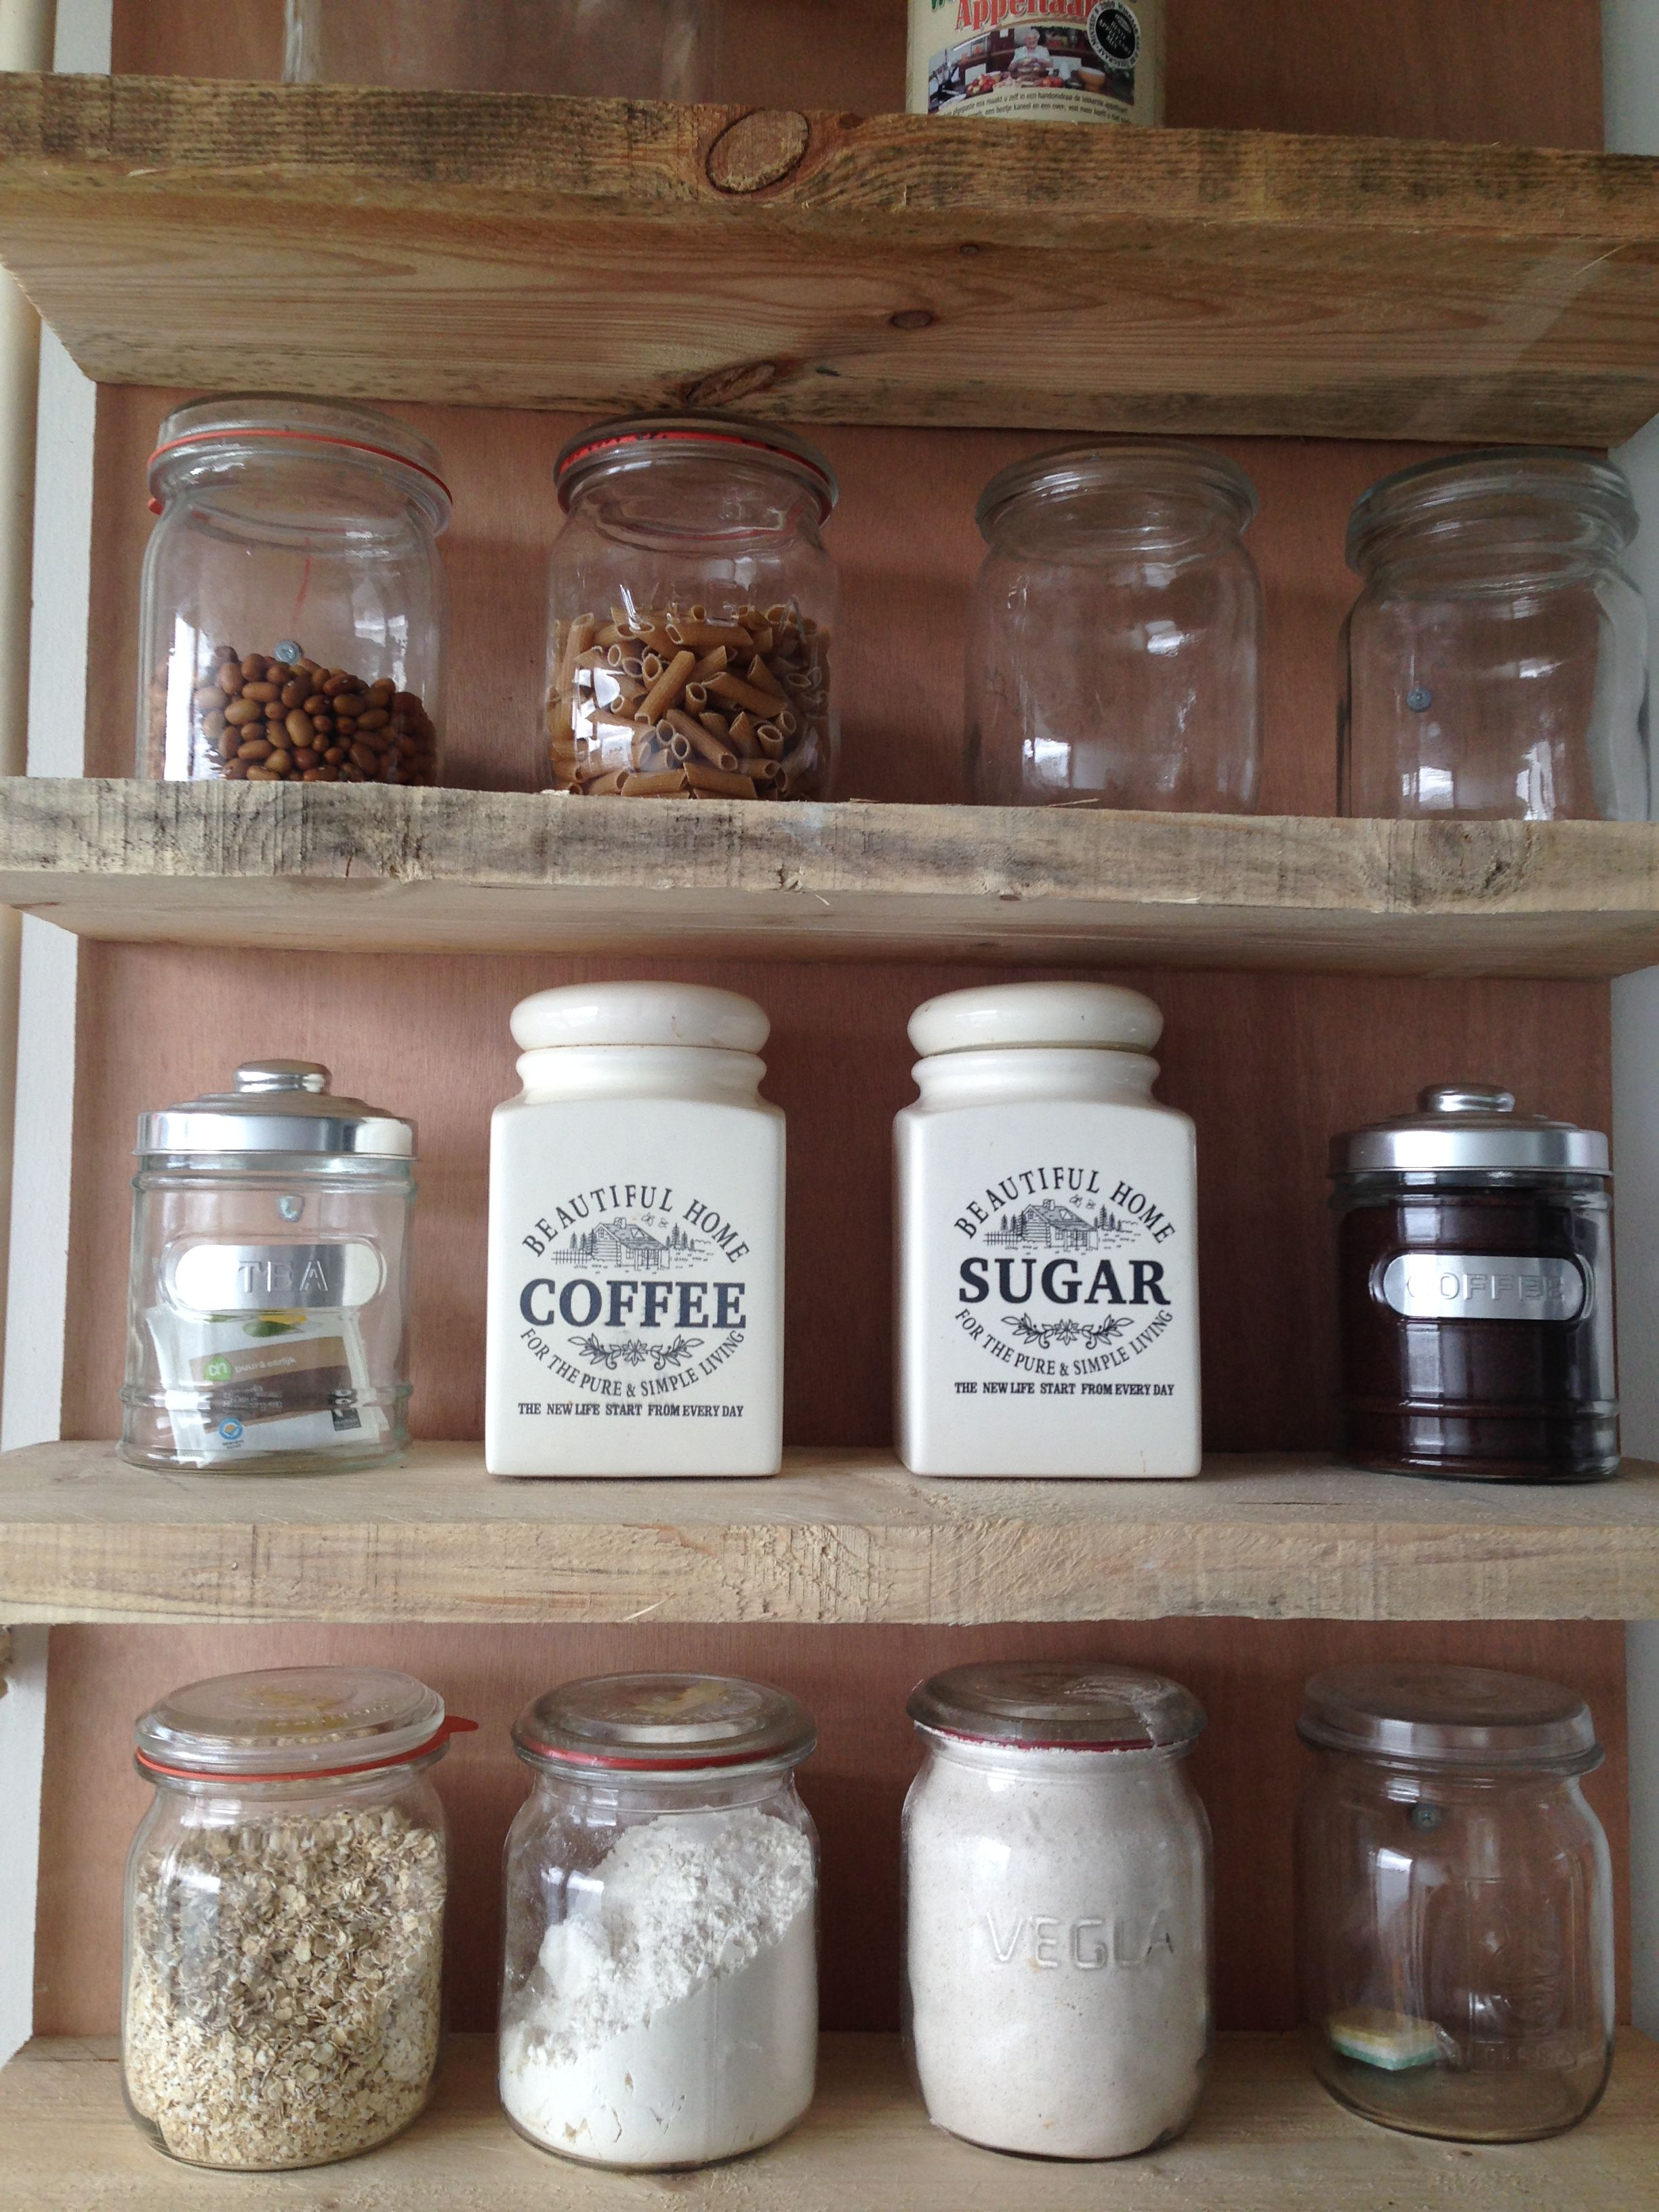 Space in the kitchen by adding shelves and glass canisters with seals - Country Store Kitchen Shelves Creating Pantry Space In The Kitchen By Adding Shelves And Glass